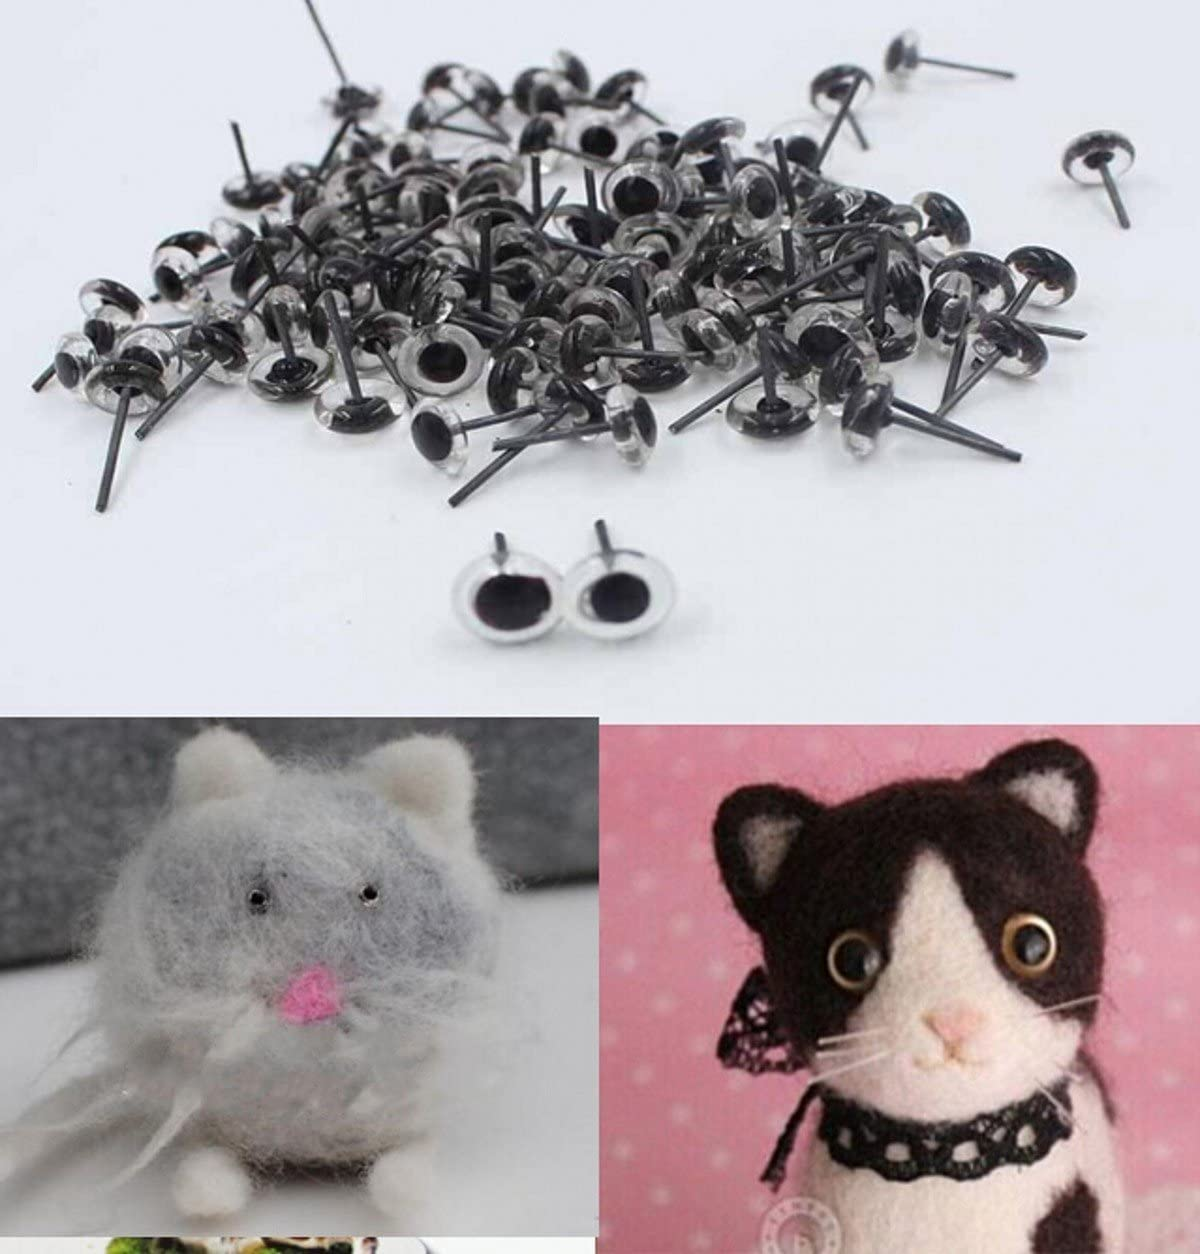 200pairs 5mm Mini Clear Glass Eyes on Wire Amber Toy Teddy Eyes Puppets Dolls Needle Felting Crafts CHENGYIDA 400pcs